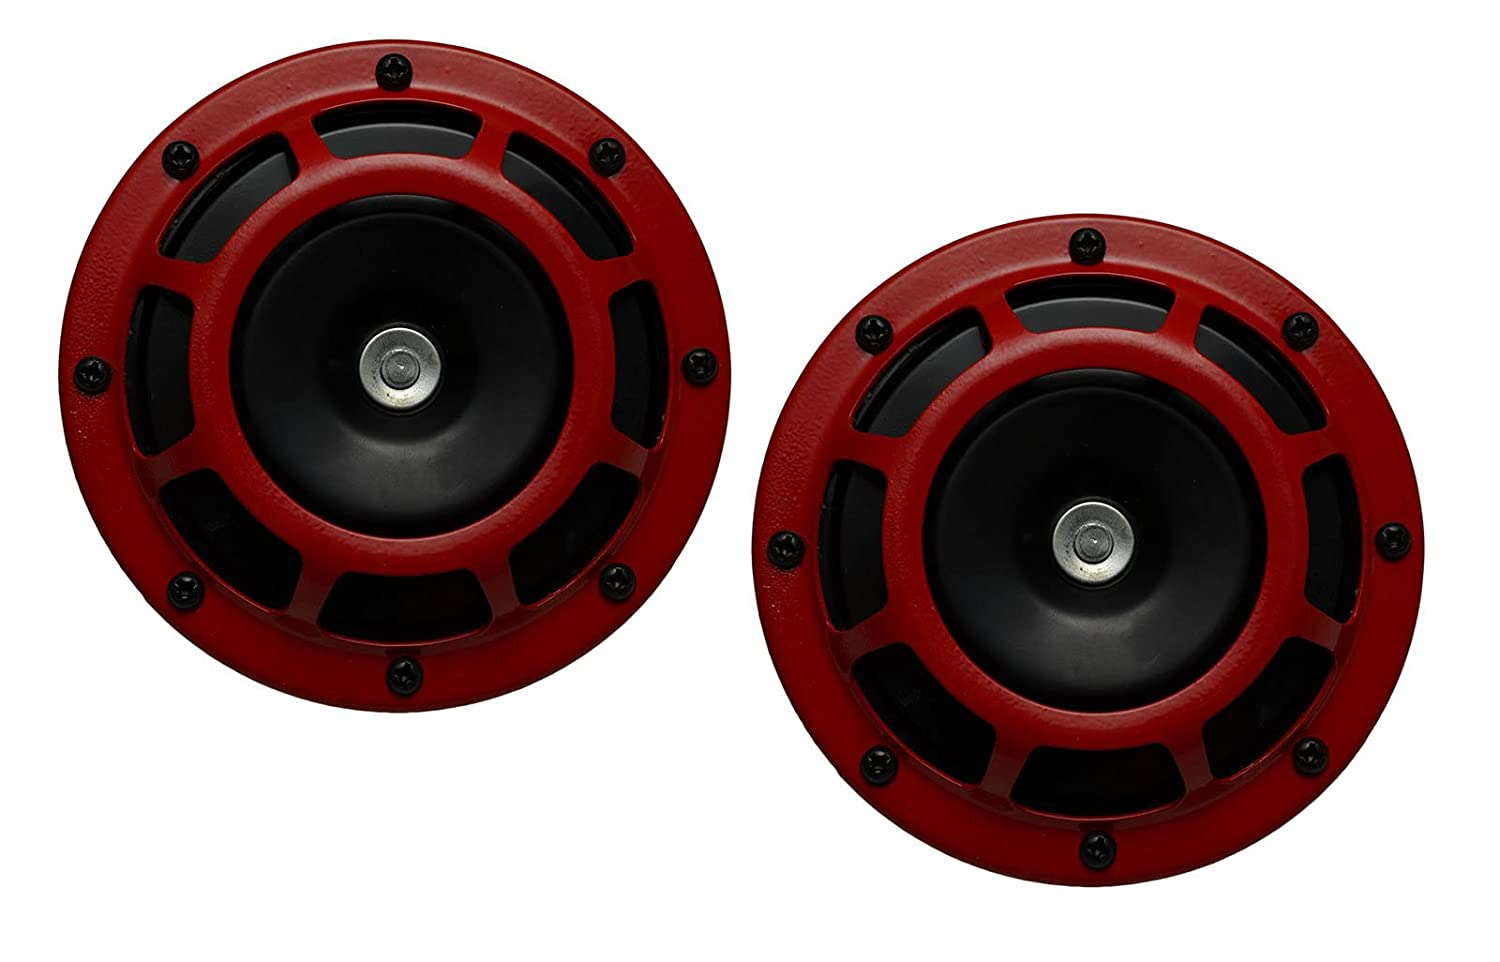 DUAL Super Tone LOUD Blast 139Db Universal Euro RED ROUND HORNS (Quantity 2) High Tone / Low Tone Twin Horn Kit with Bracket Pair Compact - Extremely LOUD for Car Bike Motorcycle Truck for Nissan Infiniti Datsun Altima Maxima Sentra SE-R Spec-V Primera 200